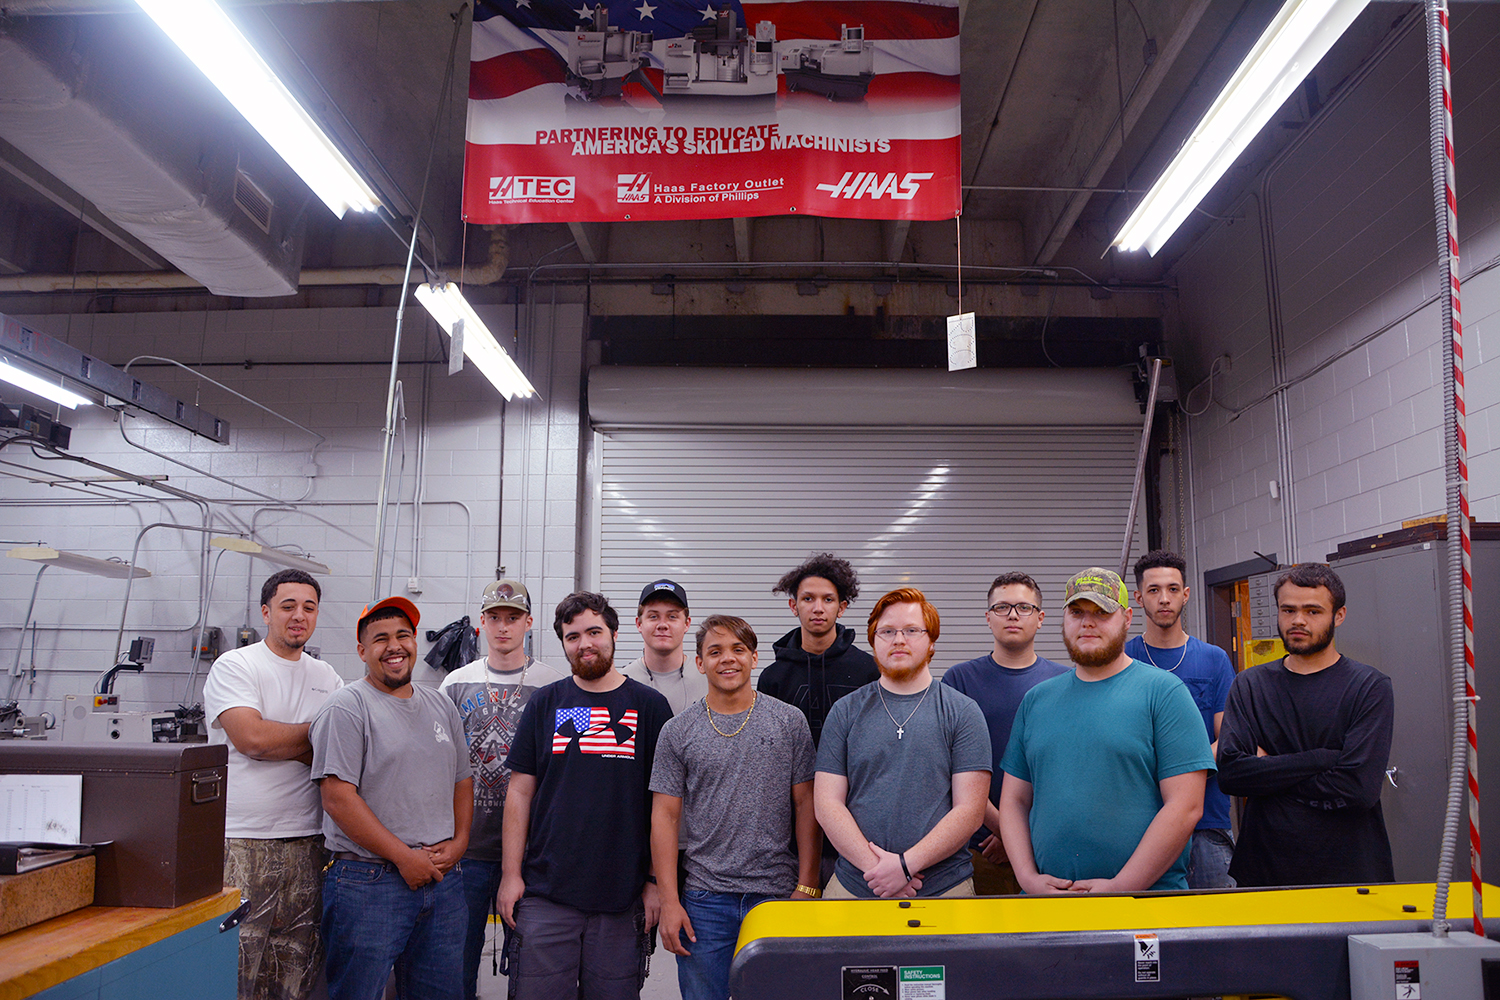 Machining students stand in a group in the machine shop